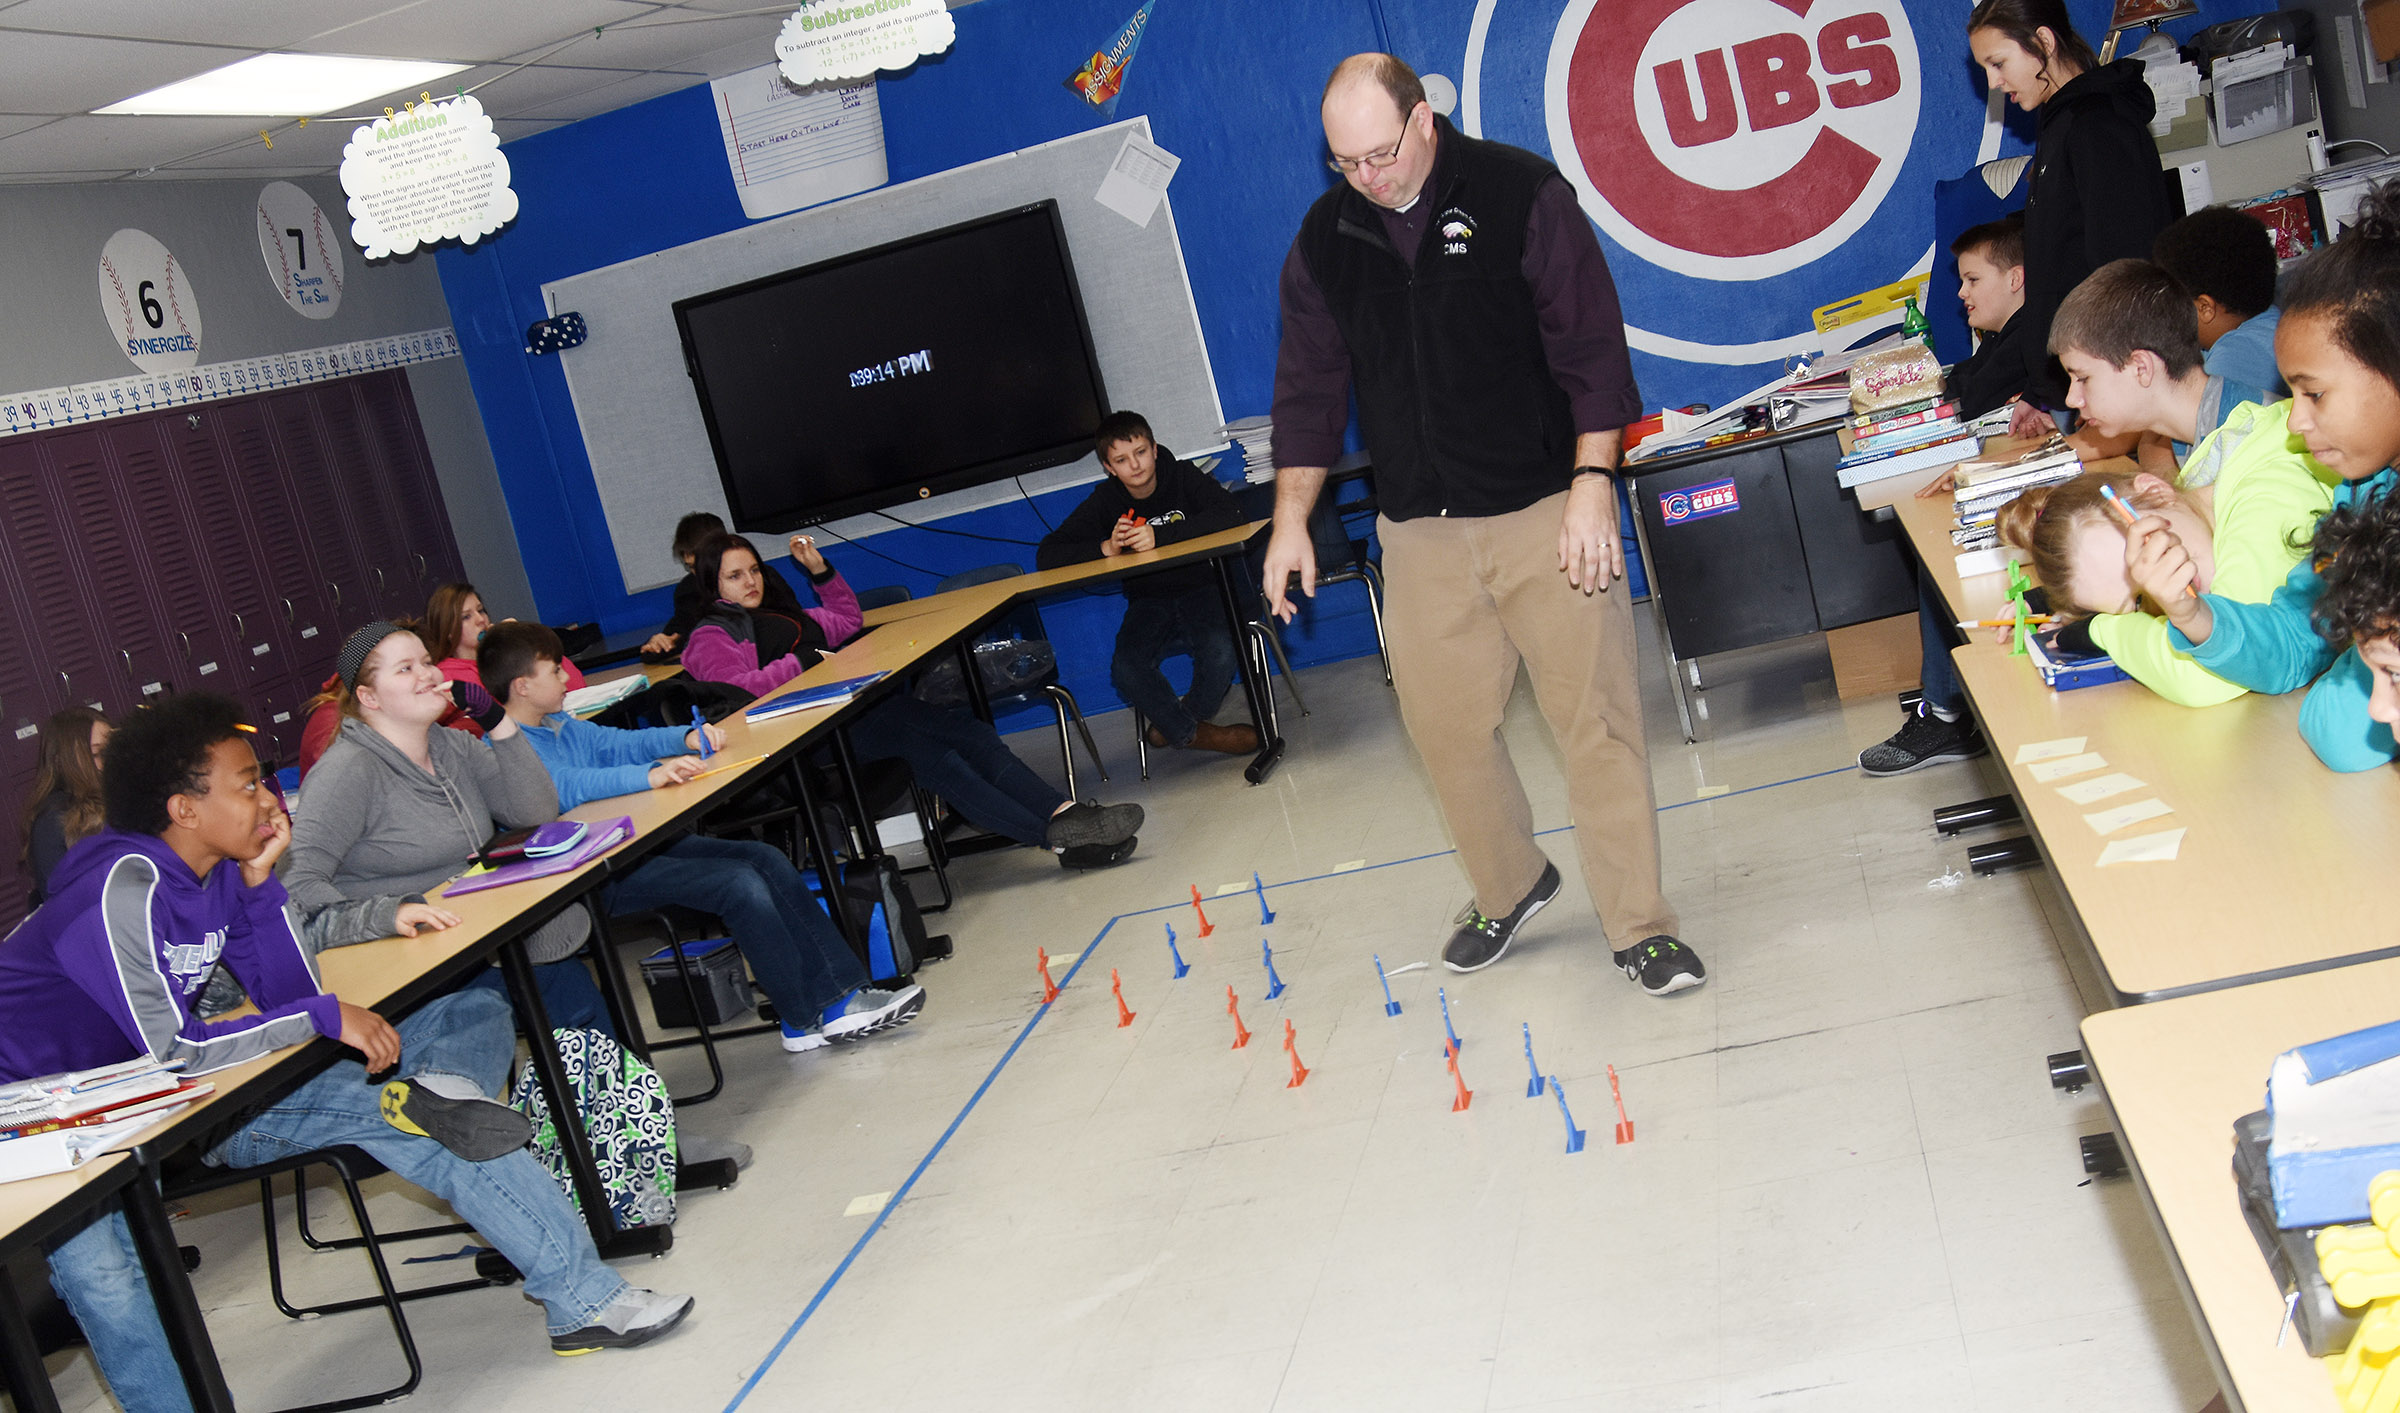 CMS teacher Steven Gumm talks to his students about how they can use a graph to organize and analyze information, and uses a life-size graph as an example.